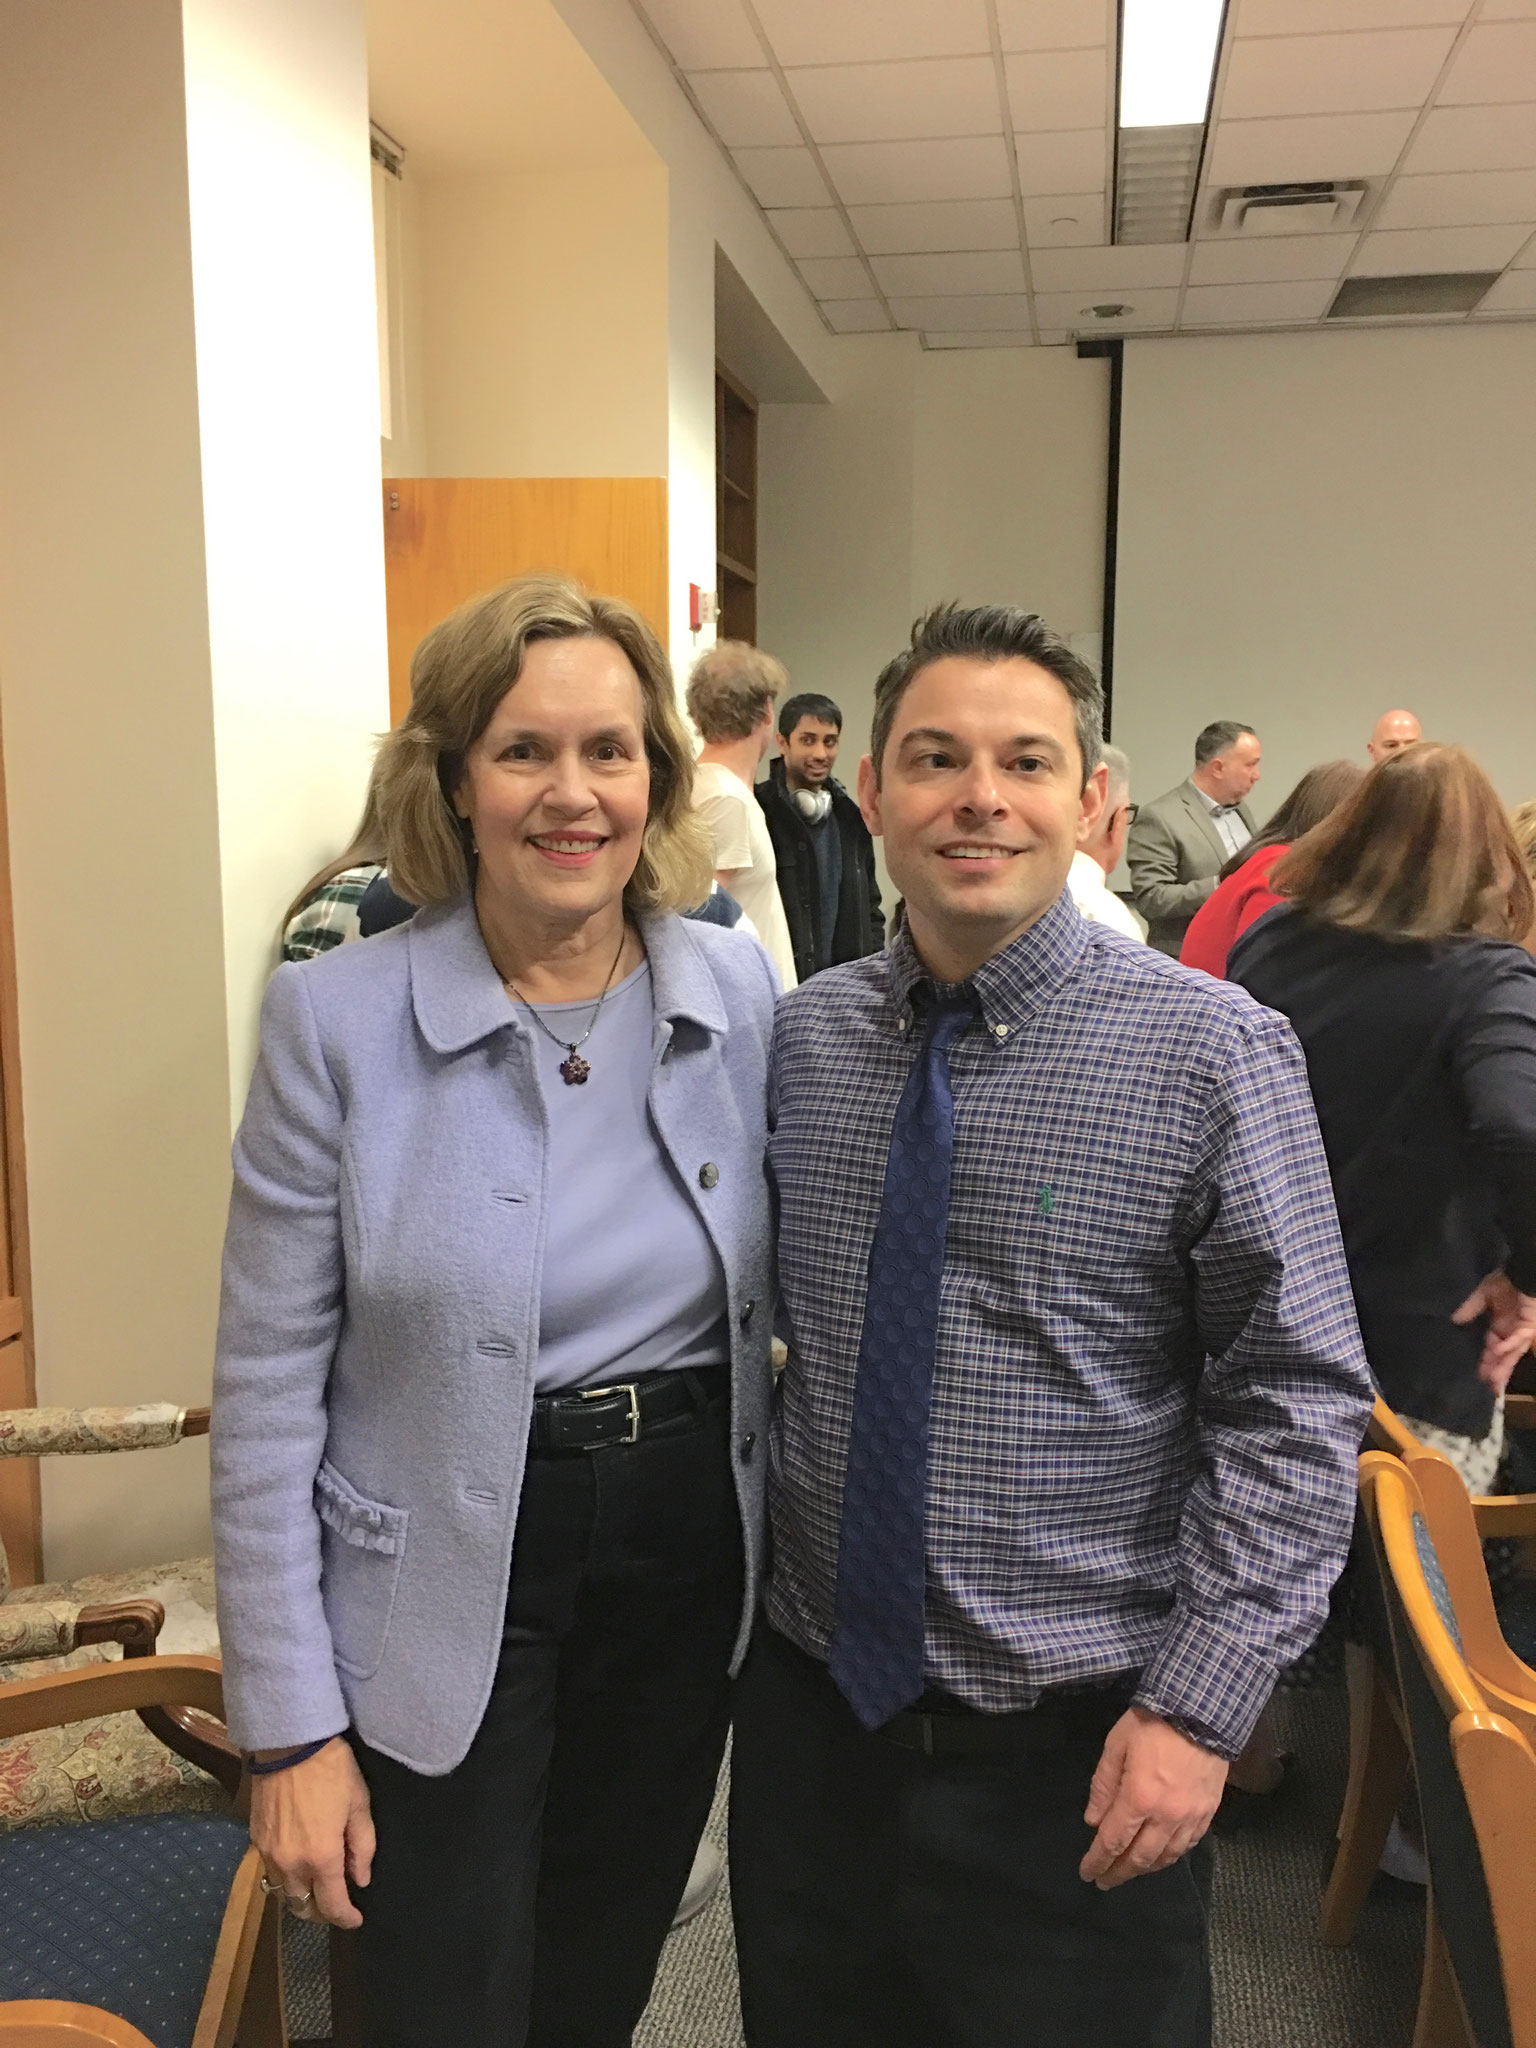 Lorraine with grad student Ryan Serio, Jan. 2019, at his thesis defense.